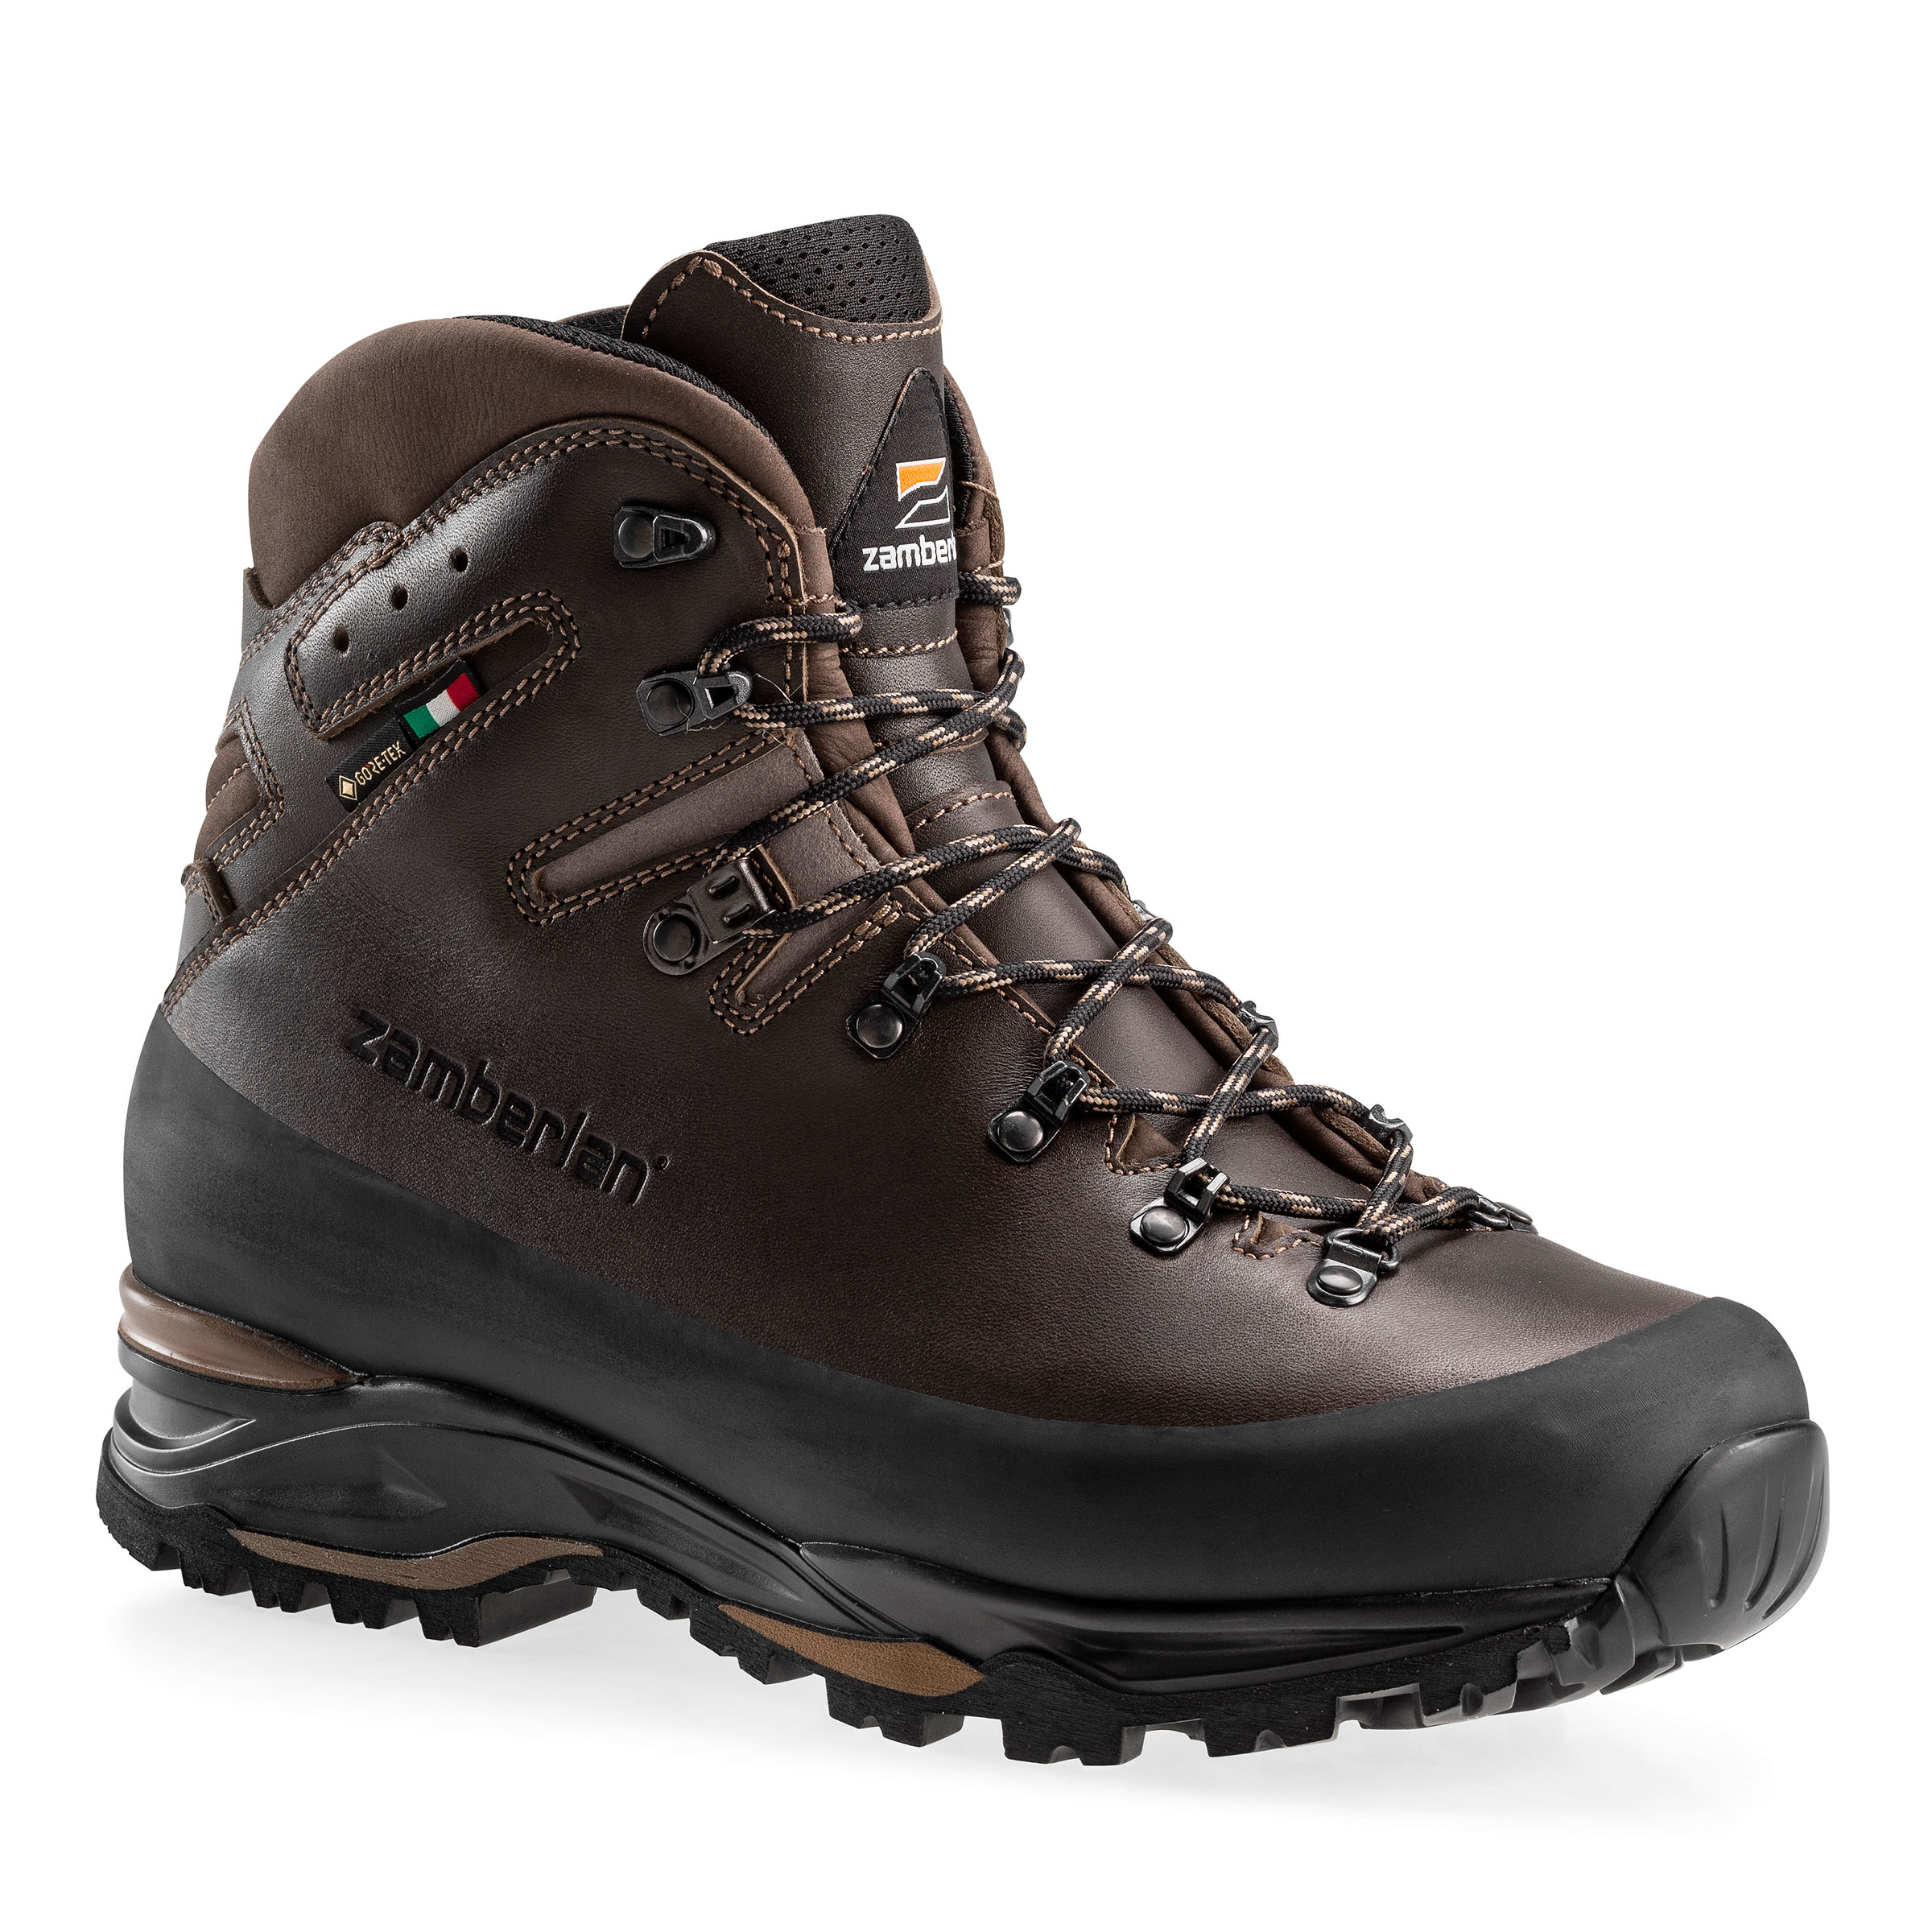 971 GUIDE LUX GTX® RR   -   Men's Hunting & Hiking Boots    -    Dark Brown